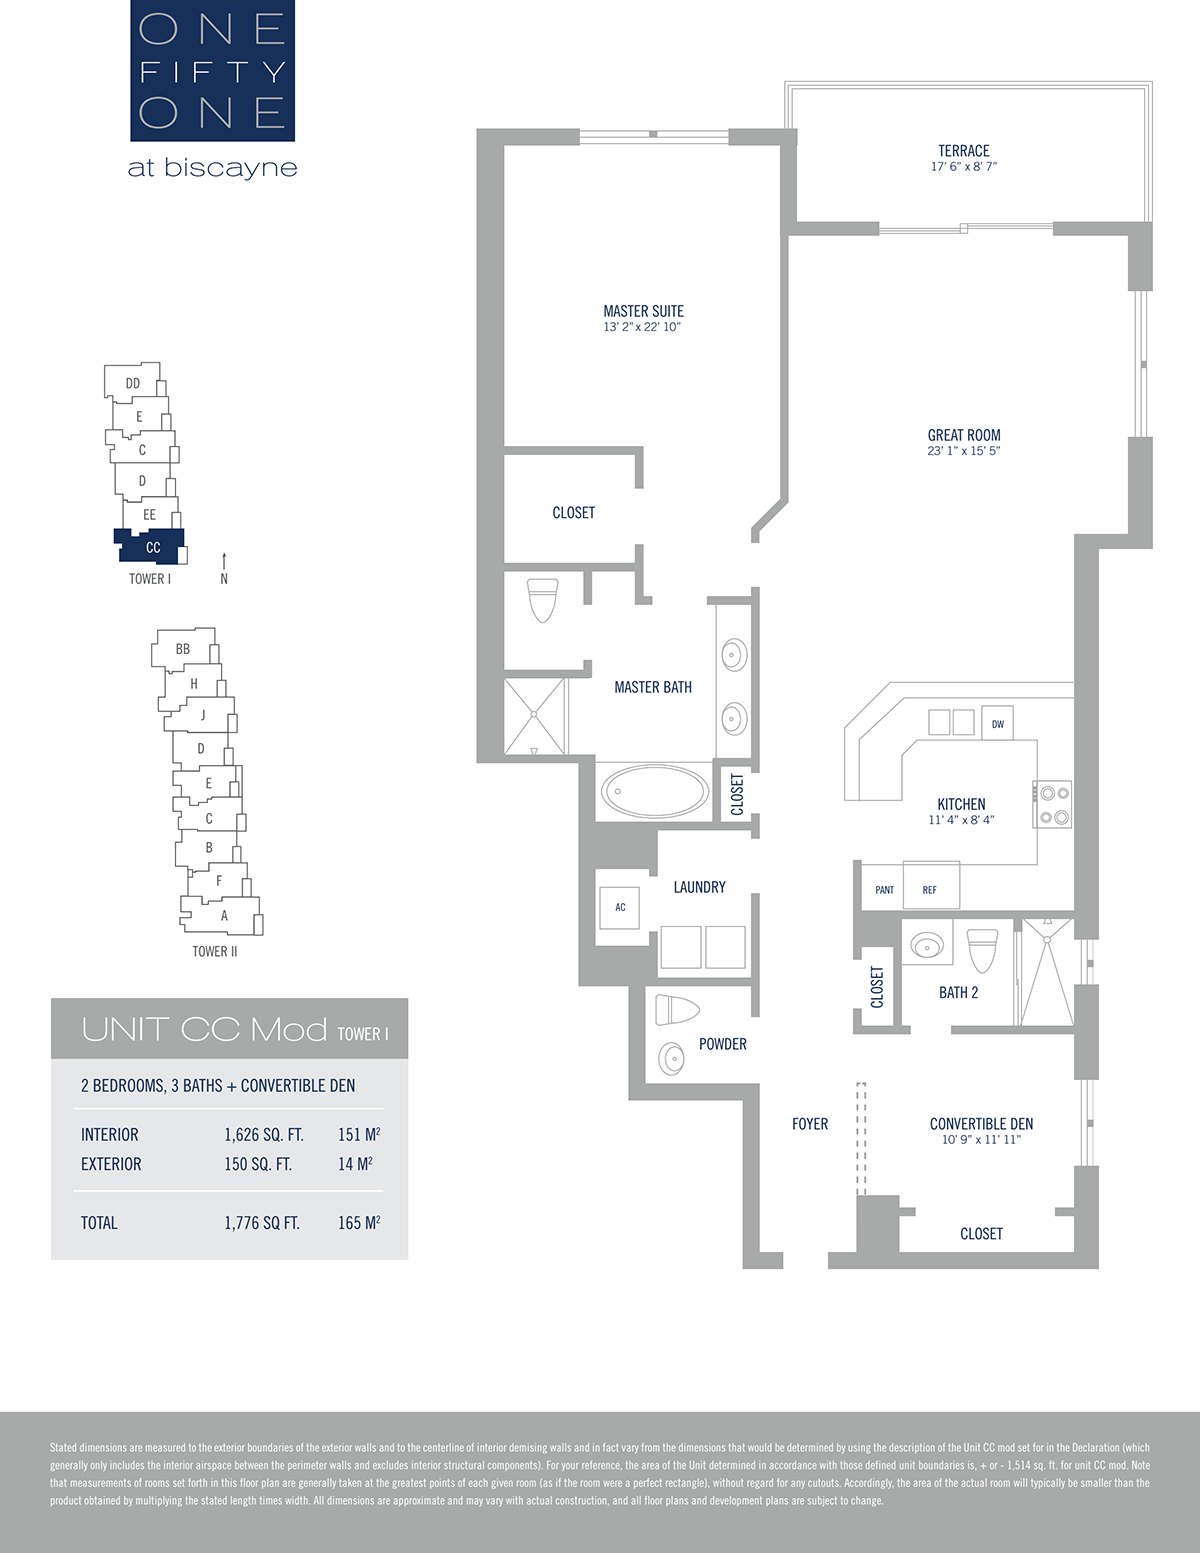 One Fifty One At Biscayne - Floorplan 14